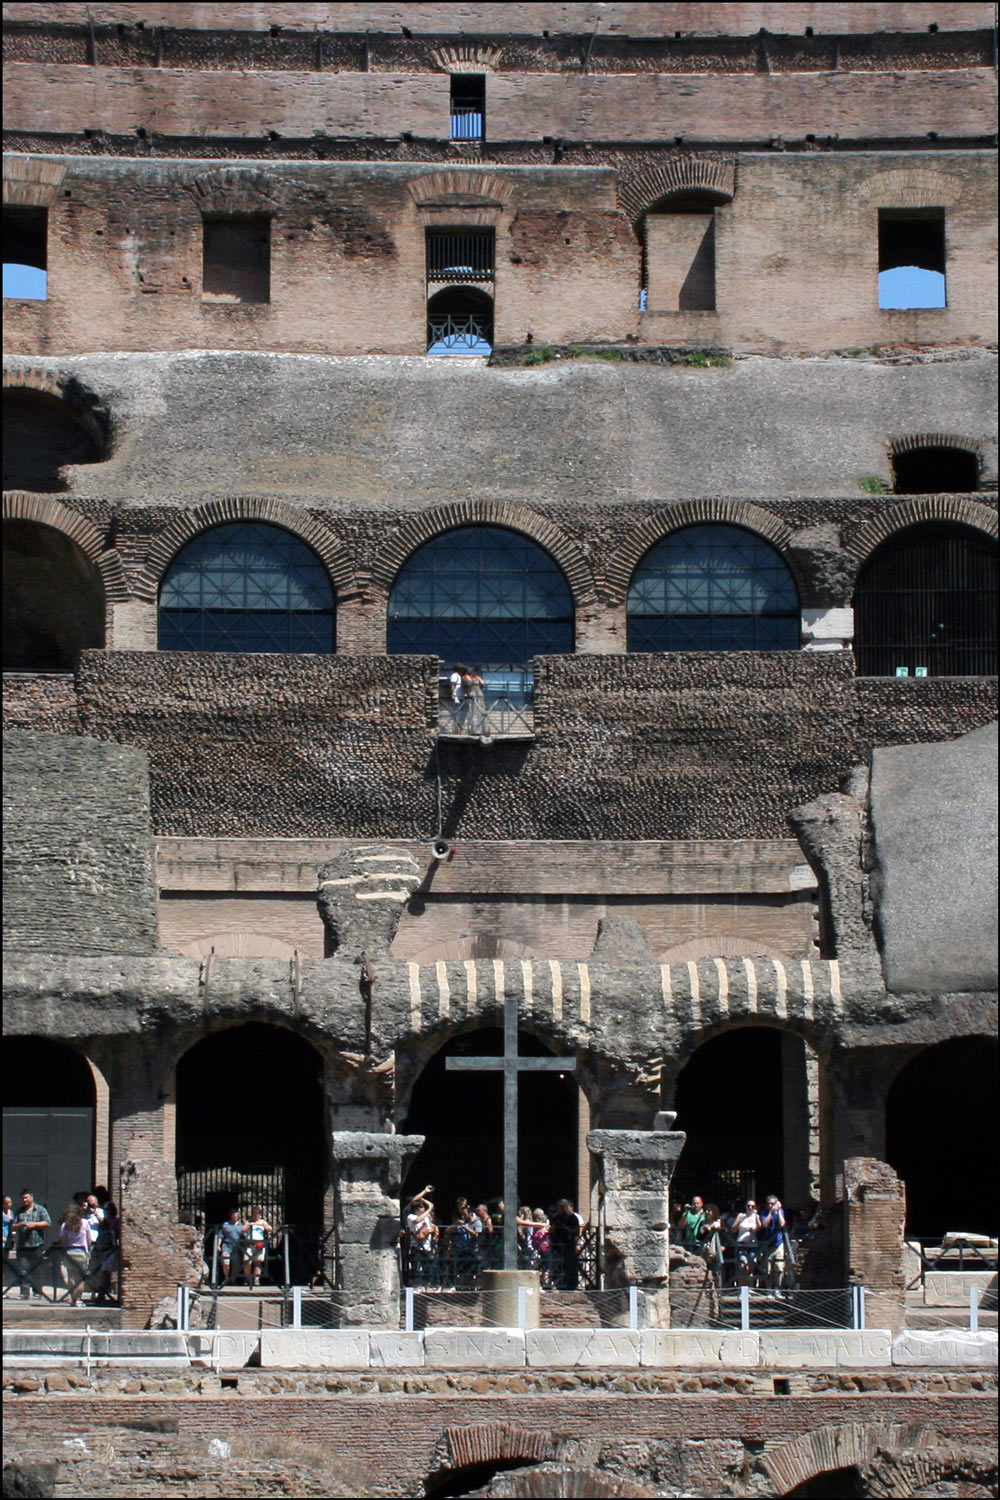 Details Of The Interior Of The Colosseum In Rome Italy